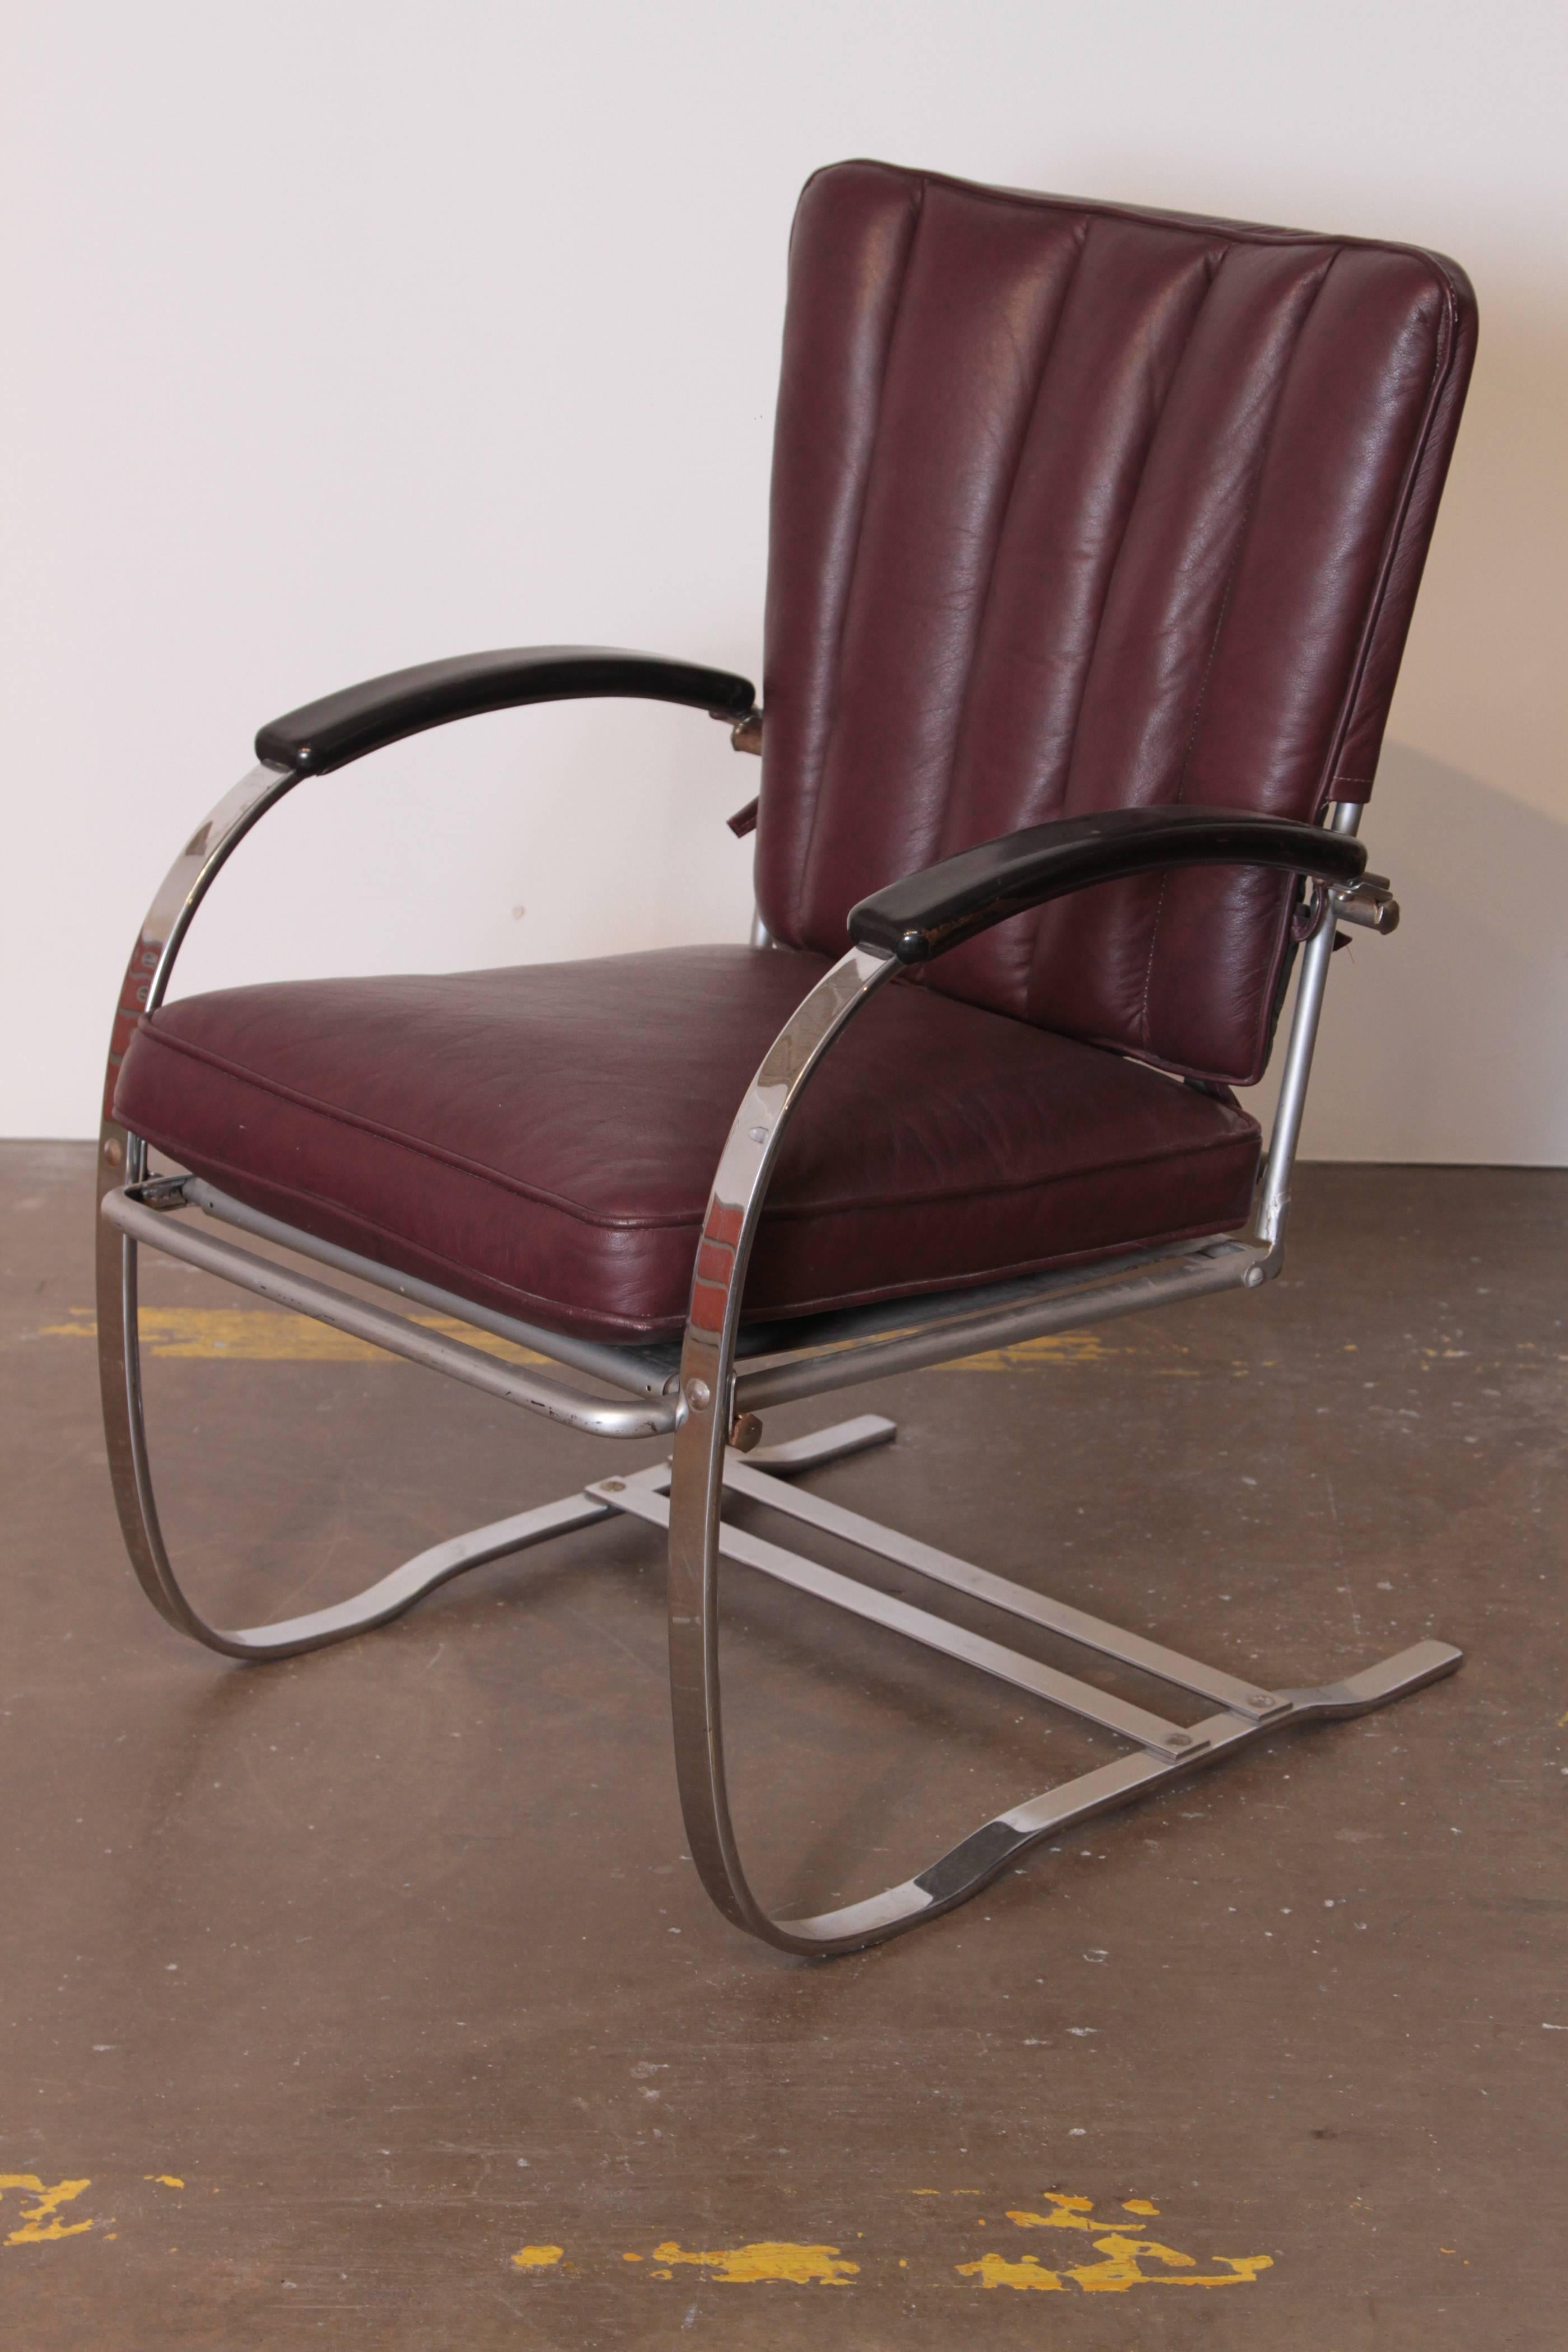 Spring Chair Art Deco Machine Age Wolfgang Hoffmann For Howell Cantilever Springer Chair